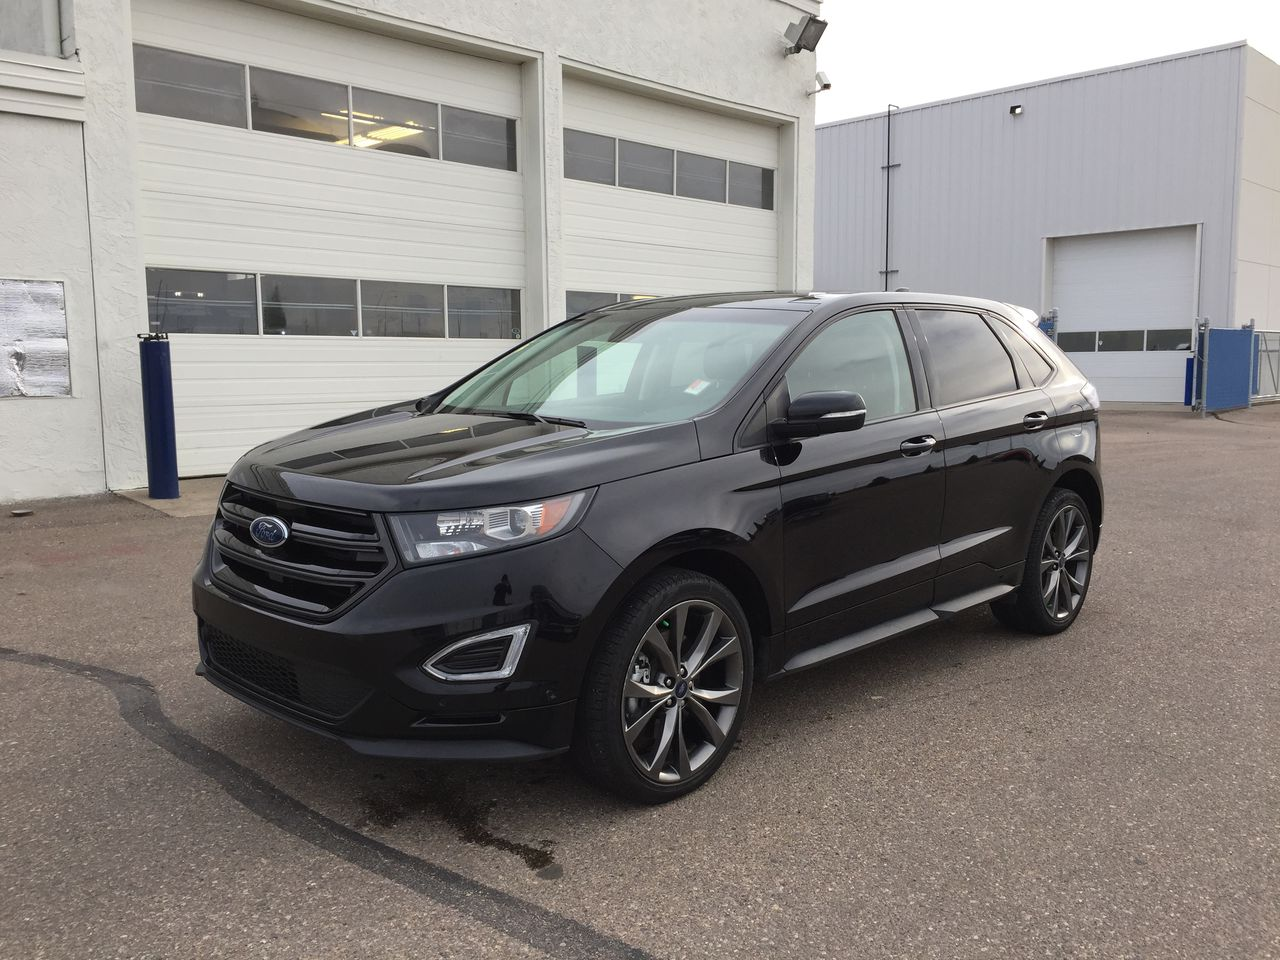 2018 Ford Edge Sport AWD (U3829A) Main Image